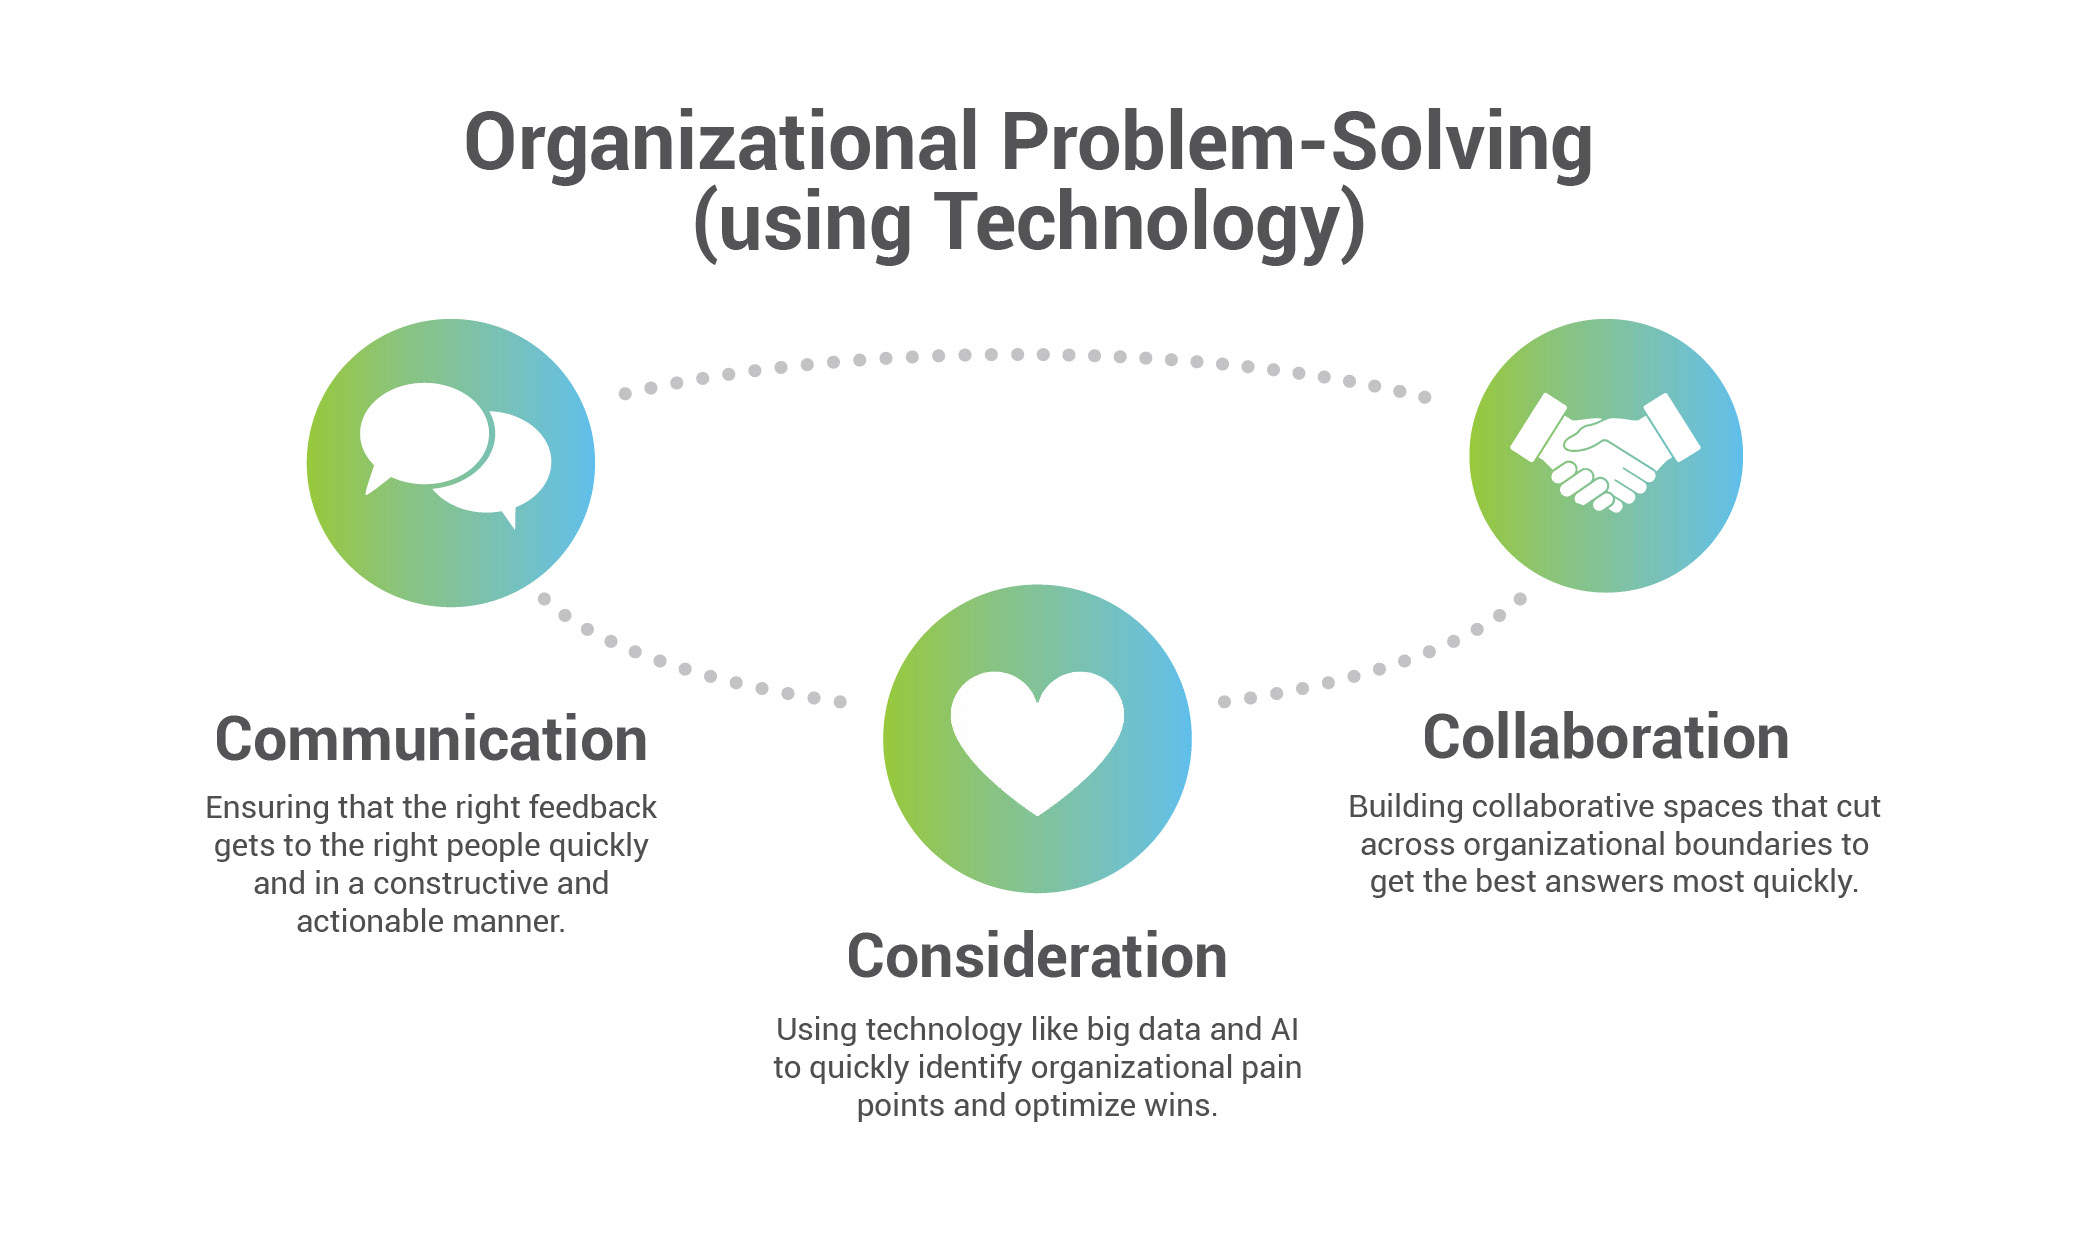 Organizational problem solving of modern learning initiative demonstrated in a visual linking communication, consideration, and collaboration with an explanation of each under the titles and an emblem representing each problem solving activity. White background with gradient (green and blue) circles around white emblems/